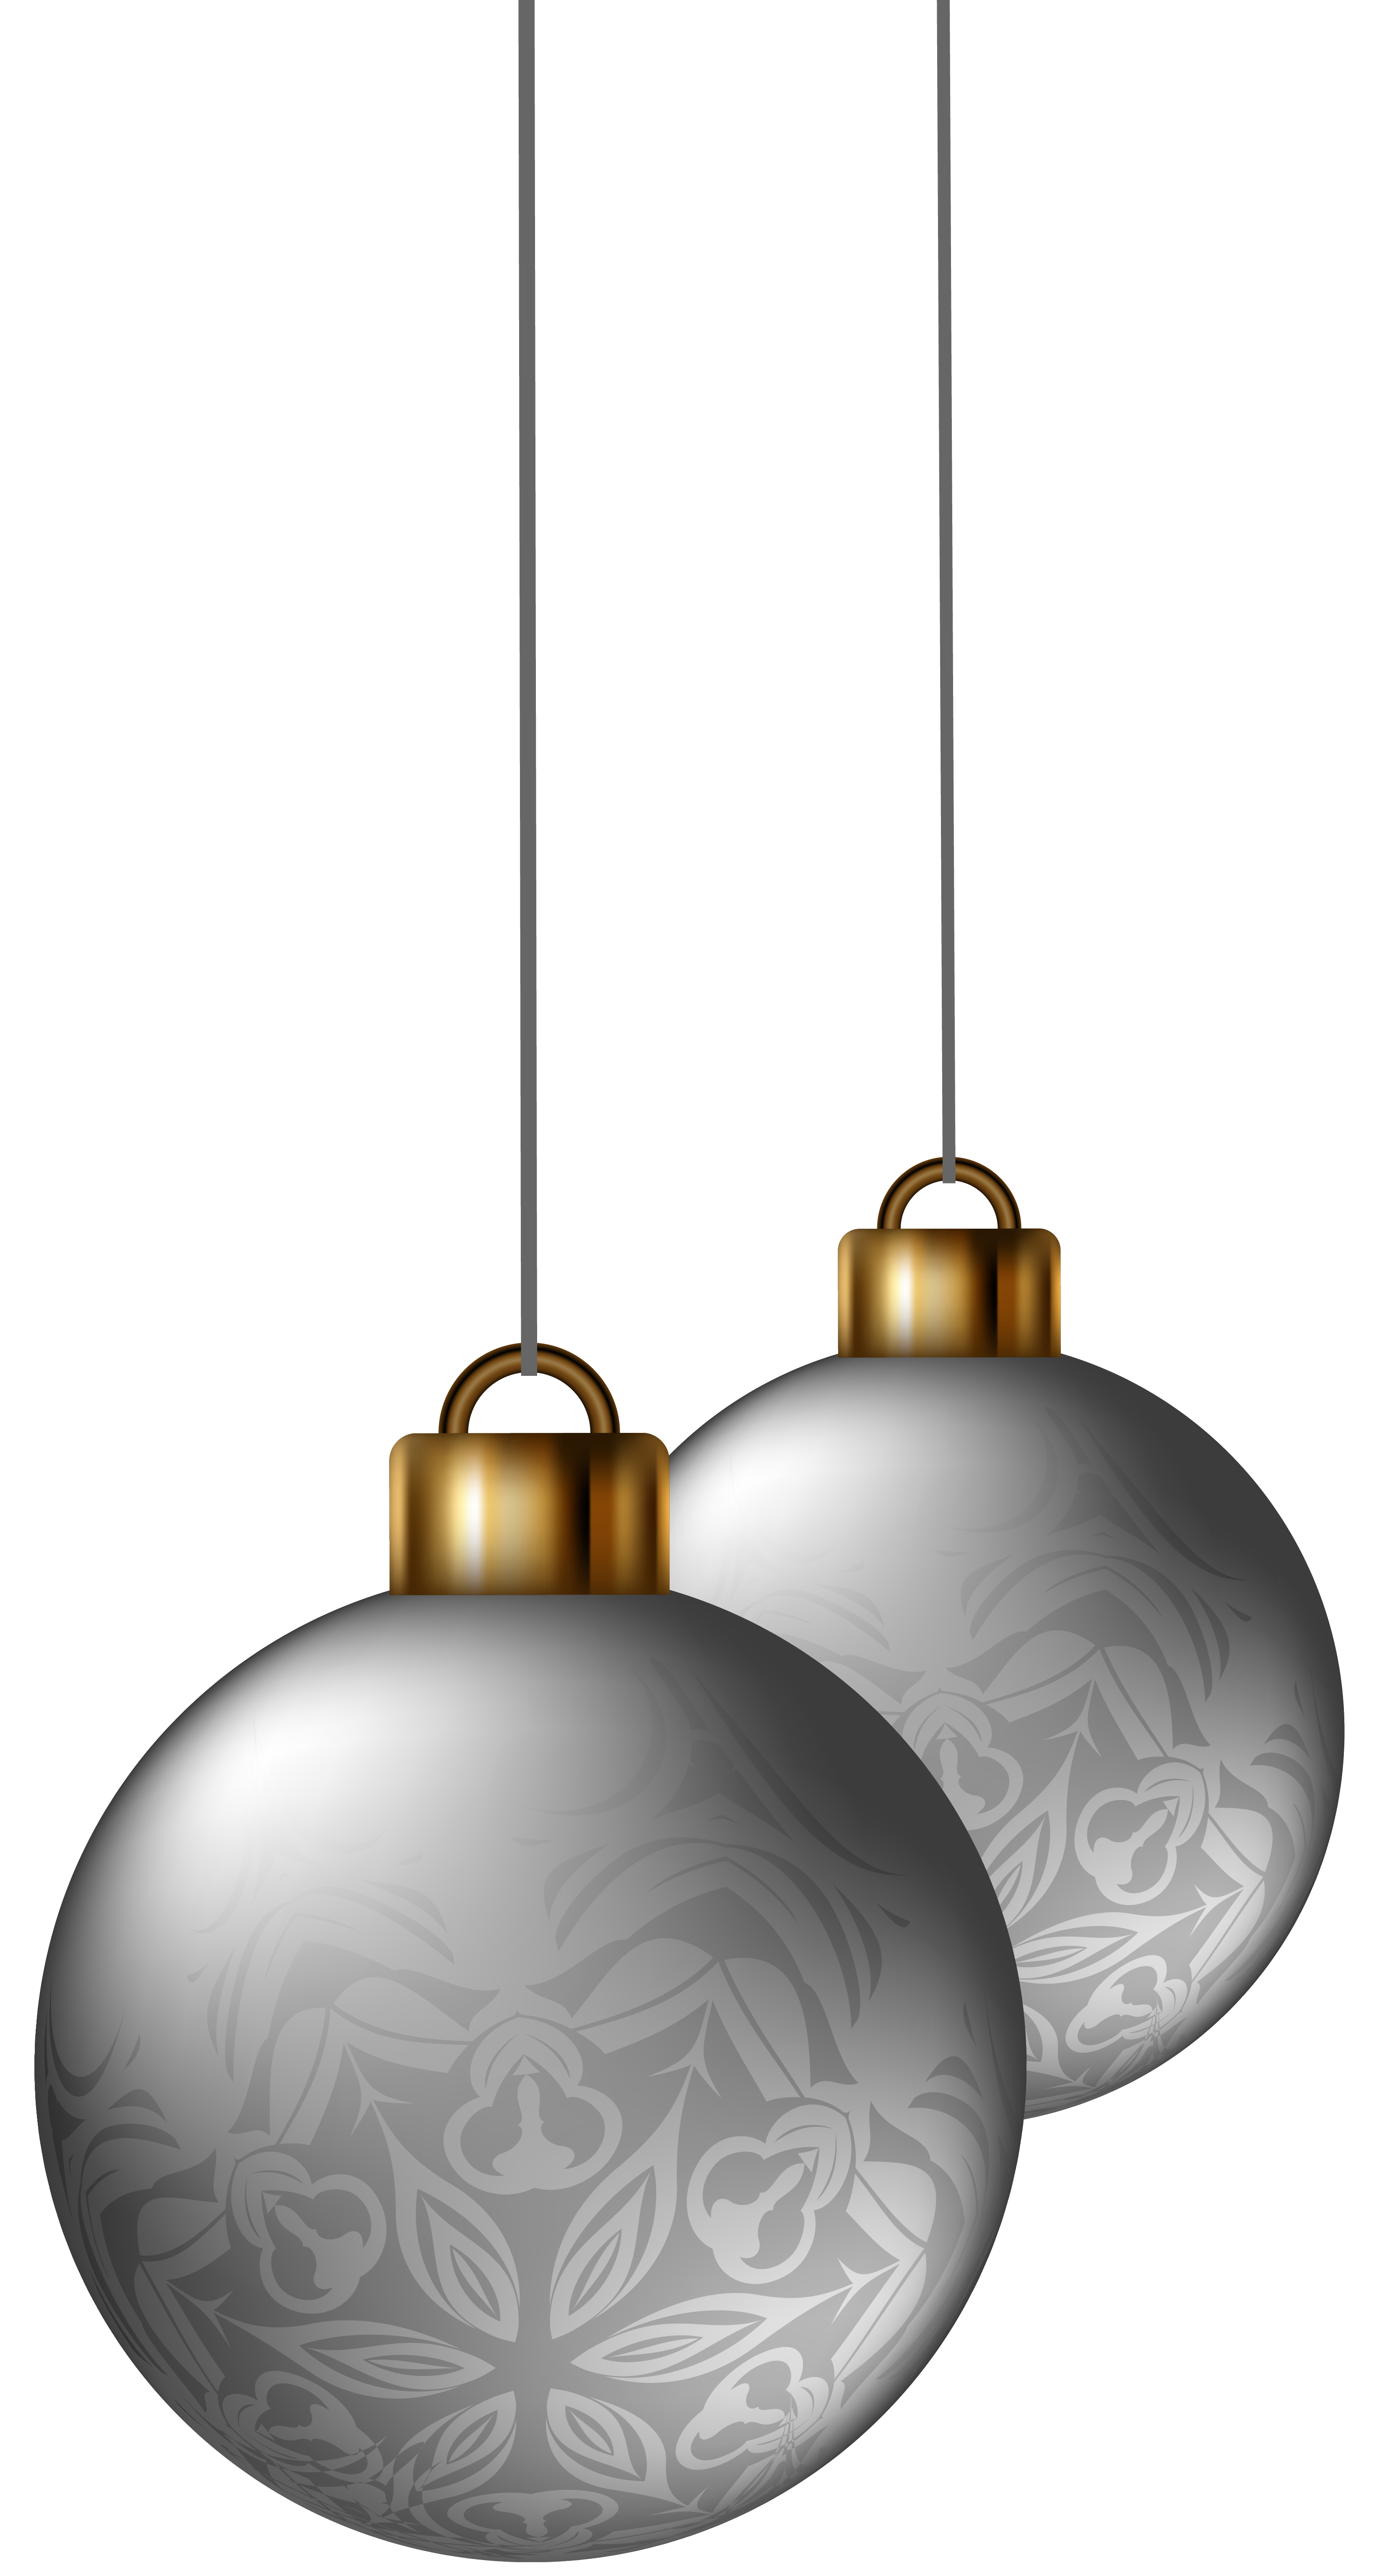 Silver christmas ornaments png. Balls clipart image gallery